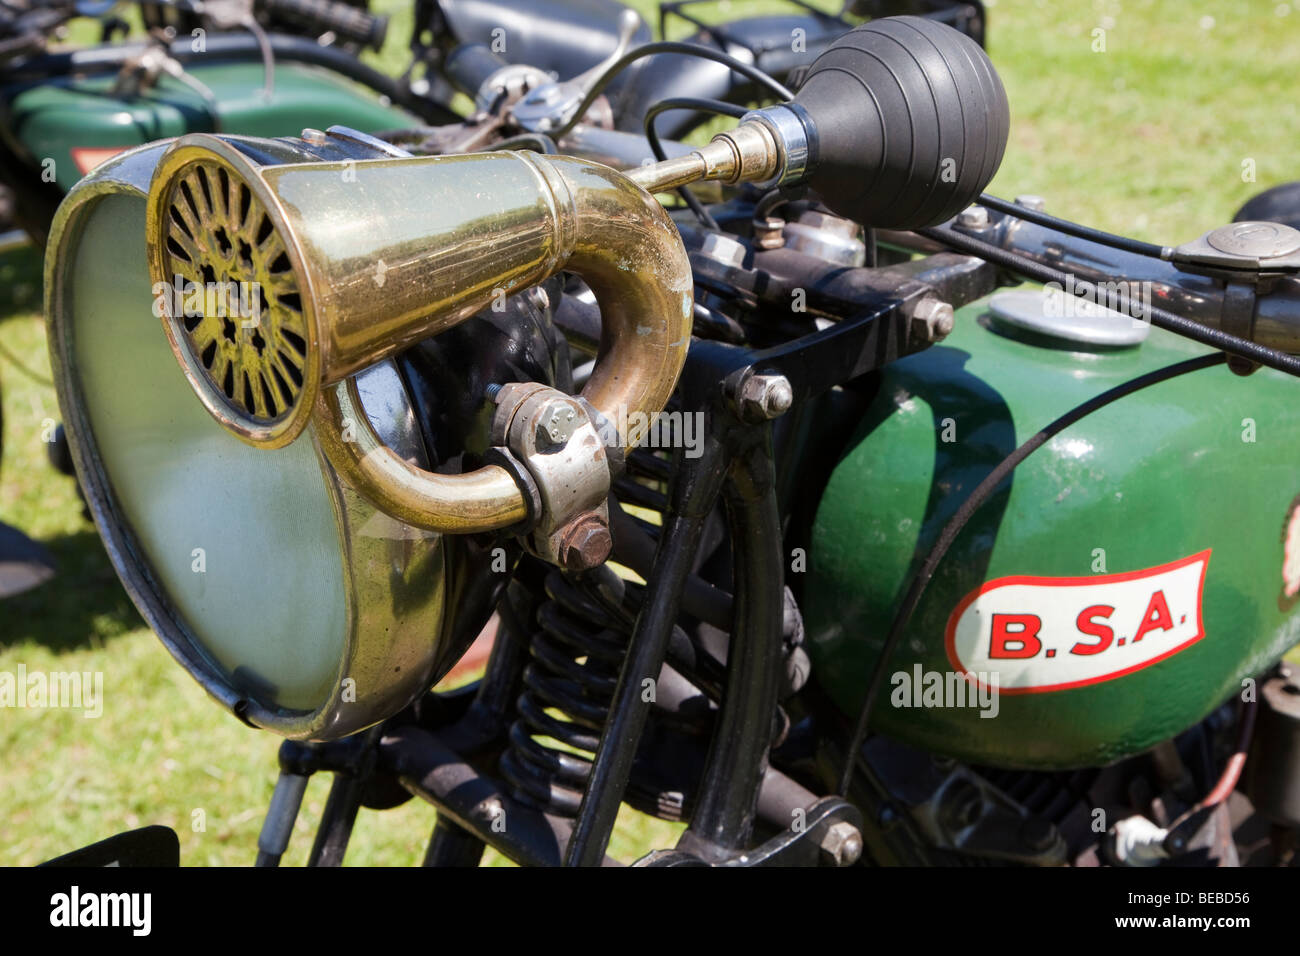 Horn on BSA motorcycle at Abergavenny steam fair Wales UK - Stock Image